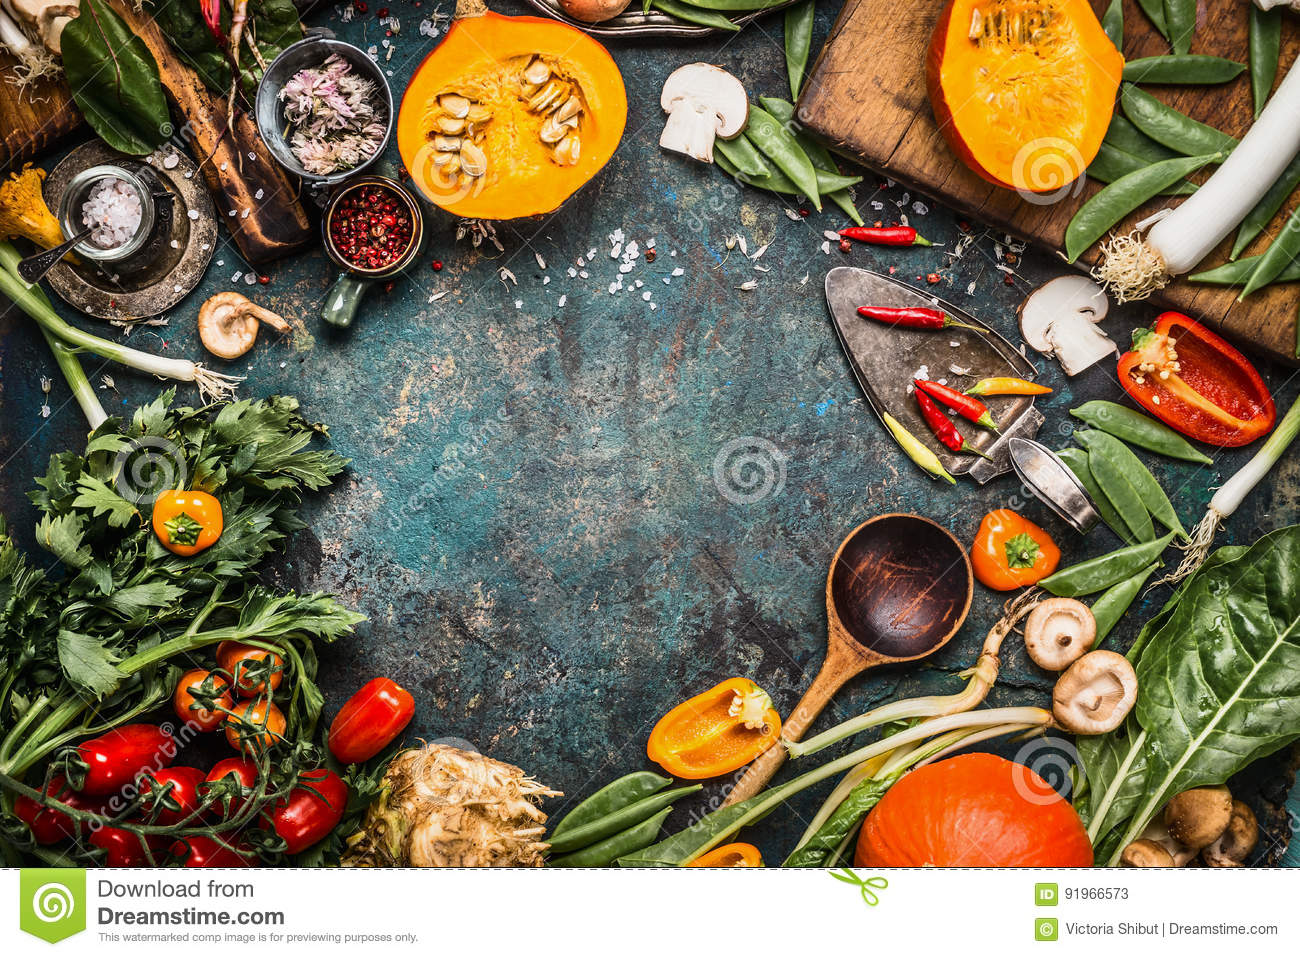 Healthy and organic harvest vegetables and ingredients: pumpkin, greens, tomatoes,kale,leek,chard,celery on rustic kitchen table b